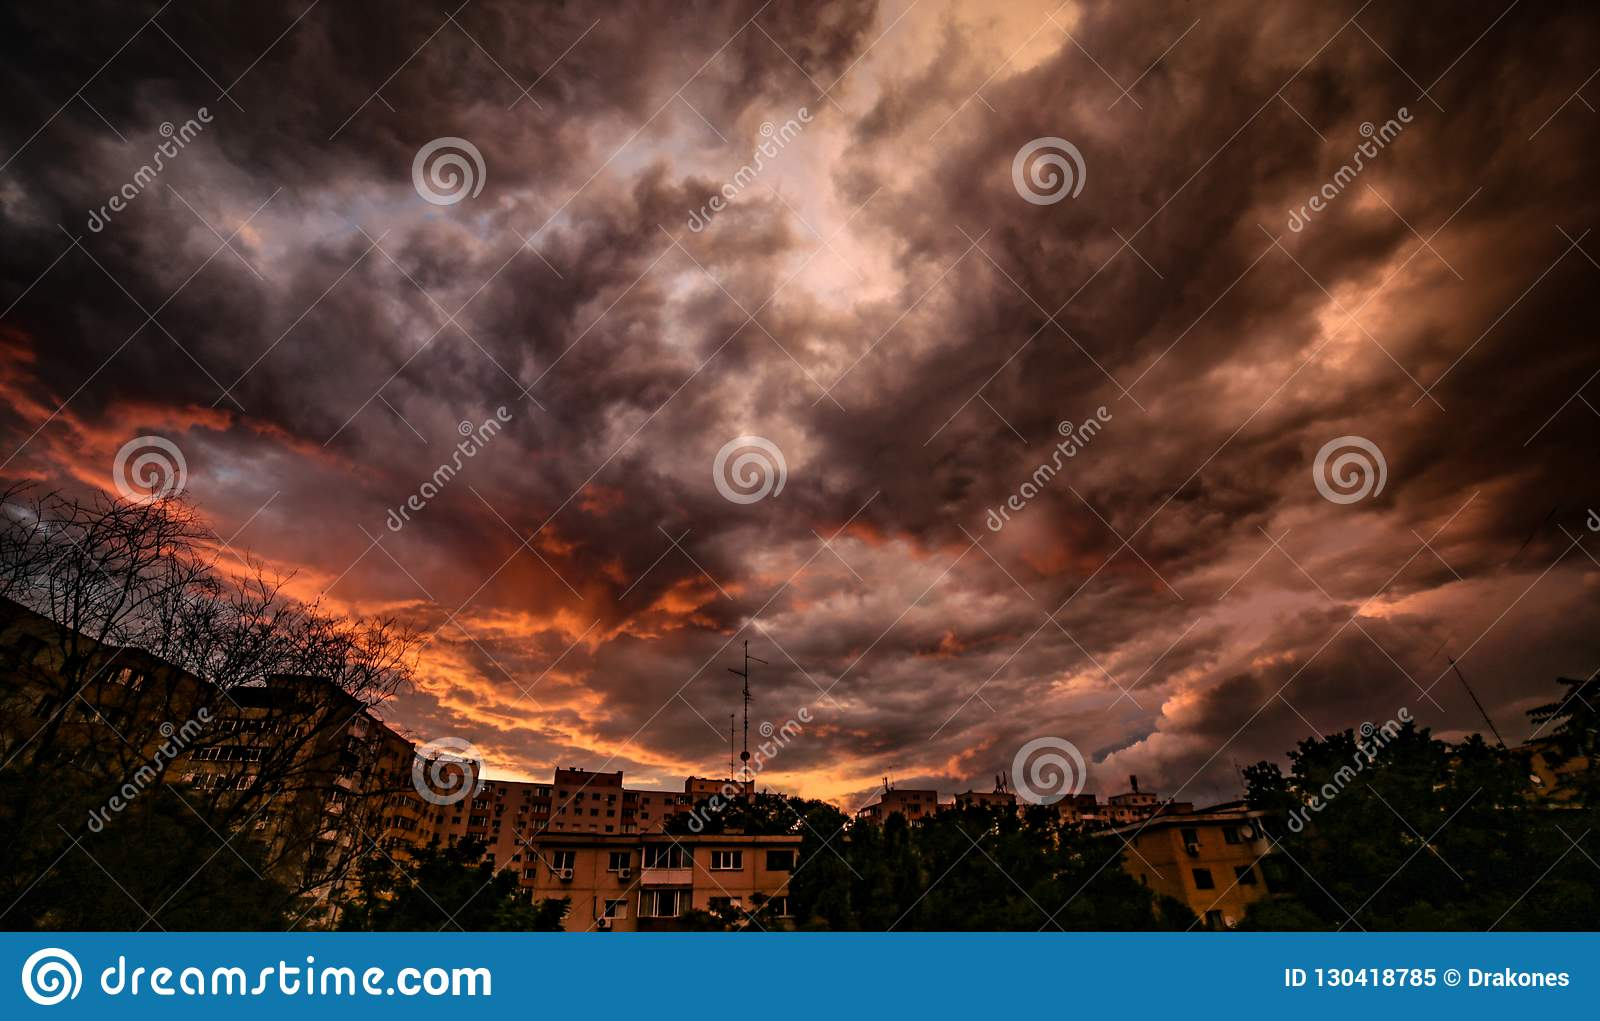 Fiery darkness before the storm